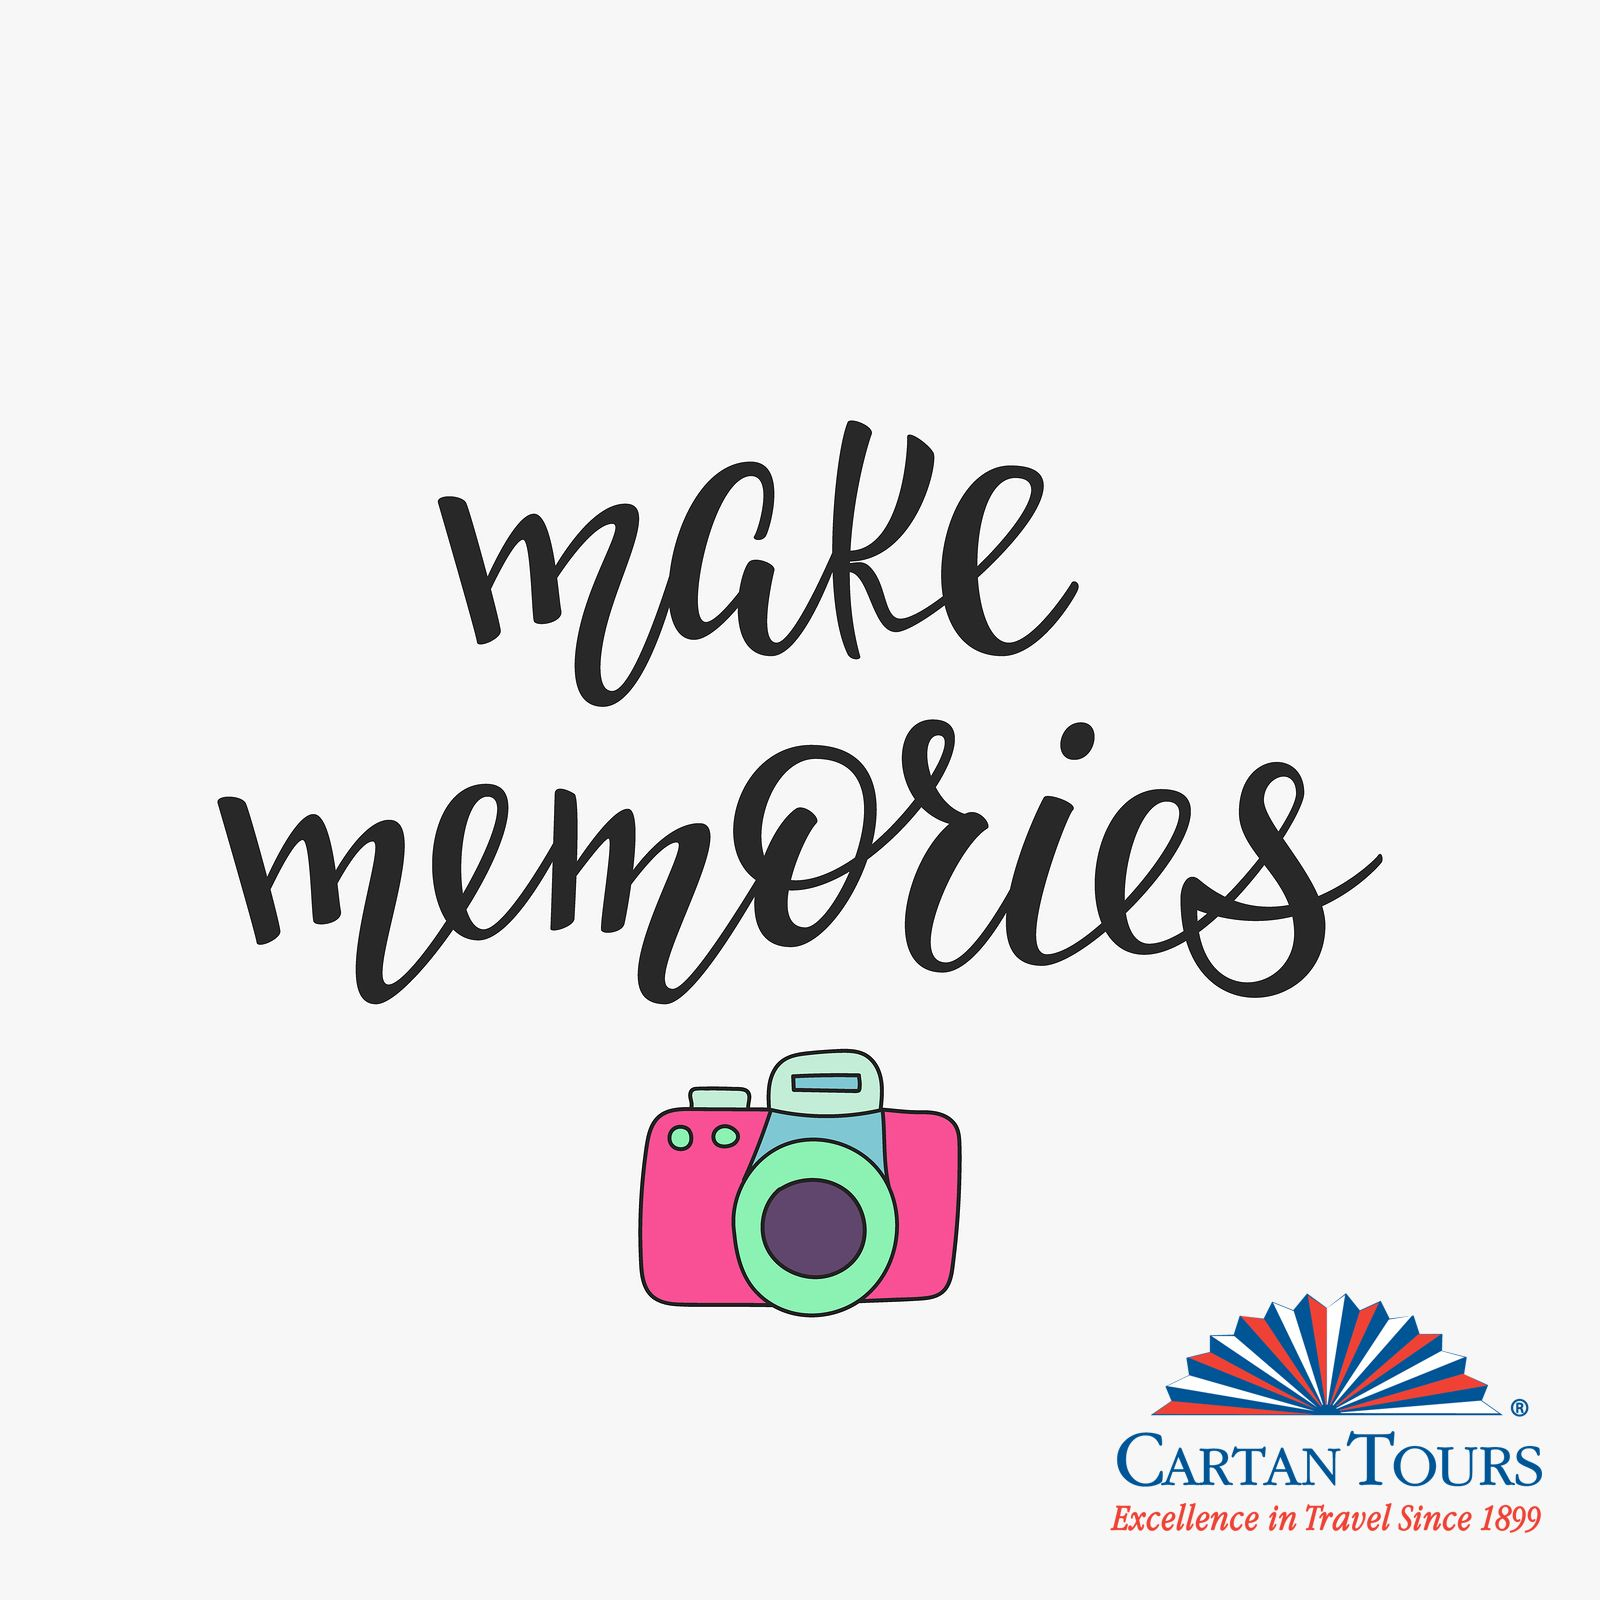 Pictures Make Memories Quotes: There Is No Better Way To Make Memories Than To Travel